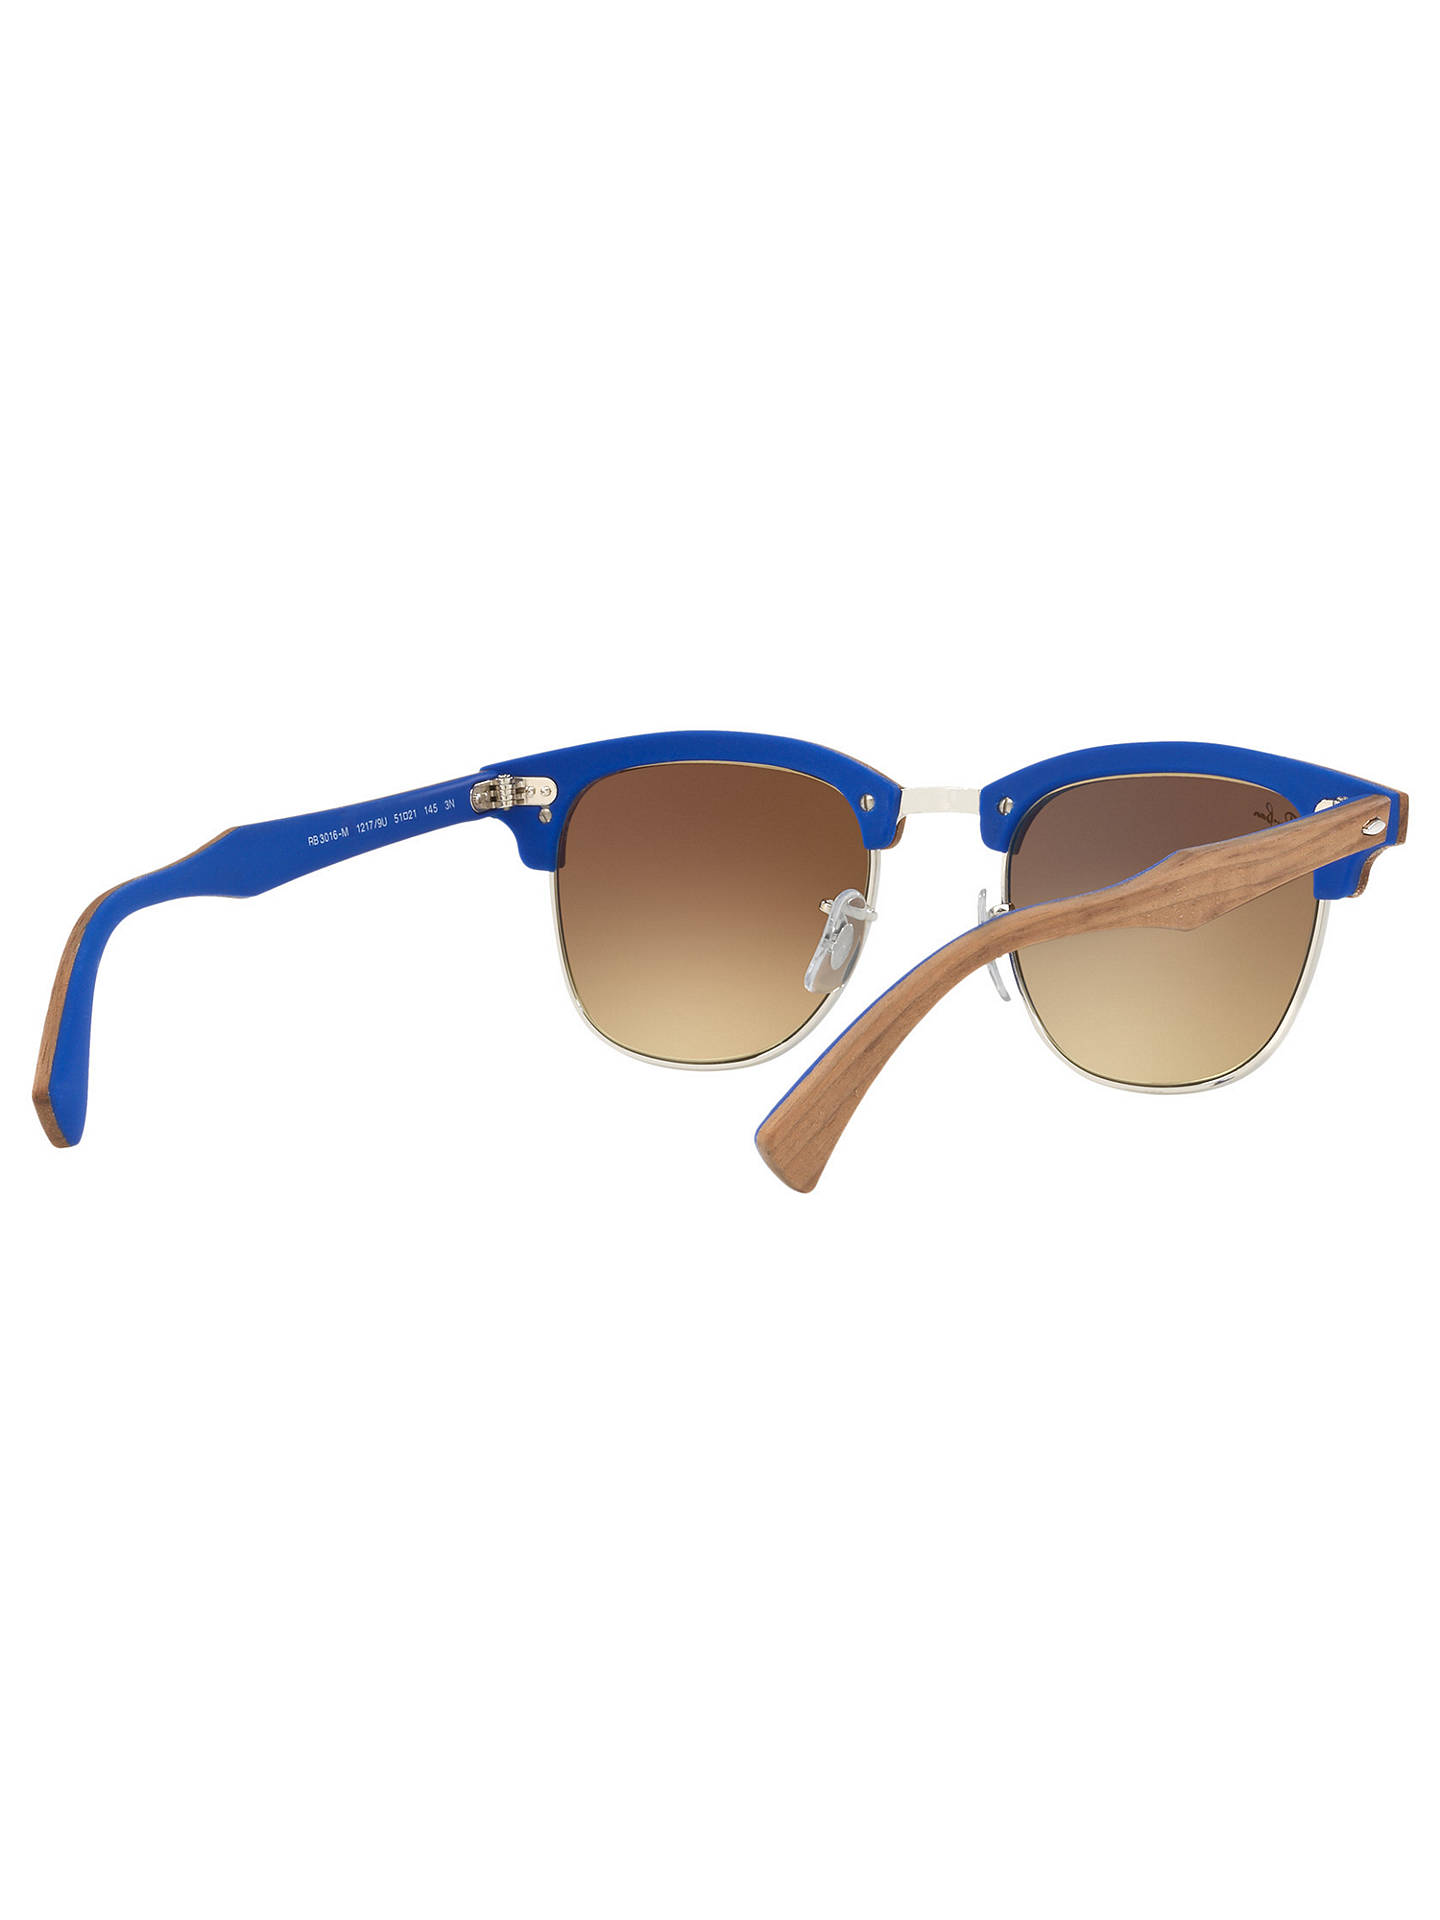 BuyRay-Ban RB3016M Classic Clubmaster Sunglasses, Tan/Mirror Silver Online at johnlewis.com